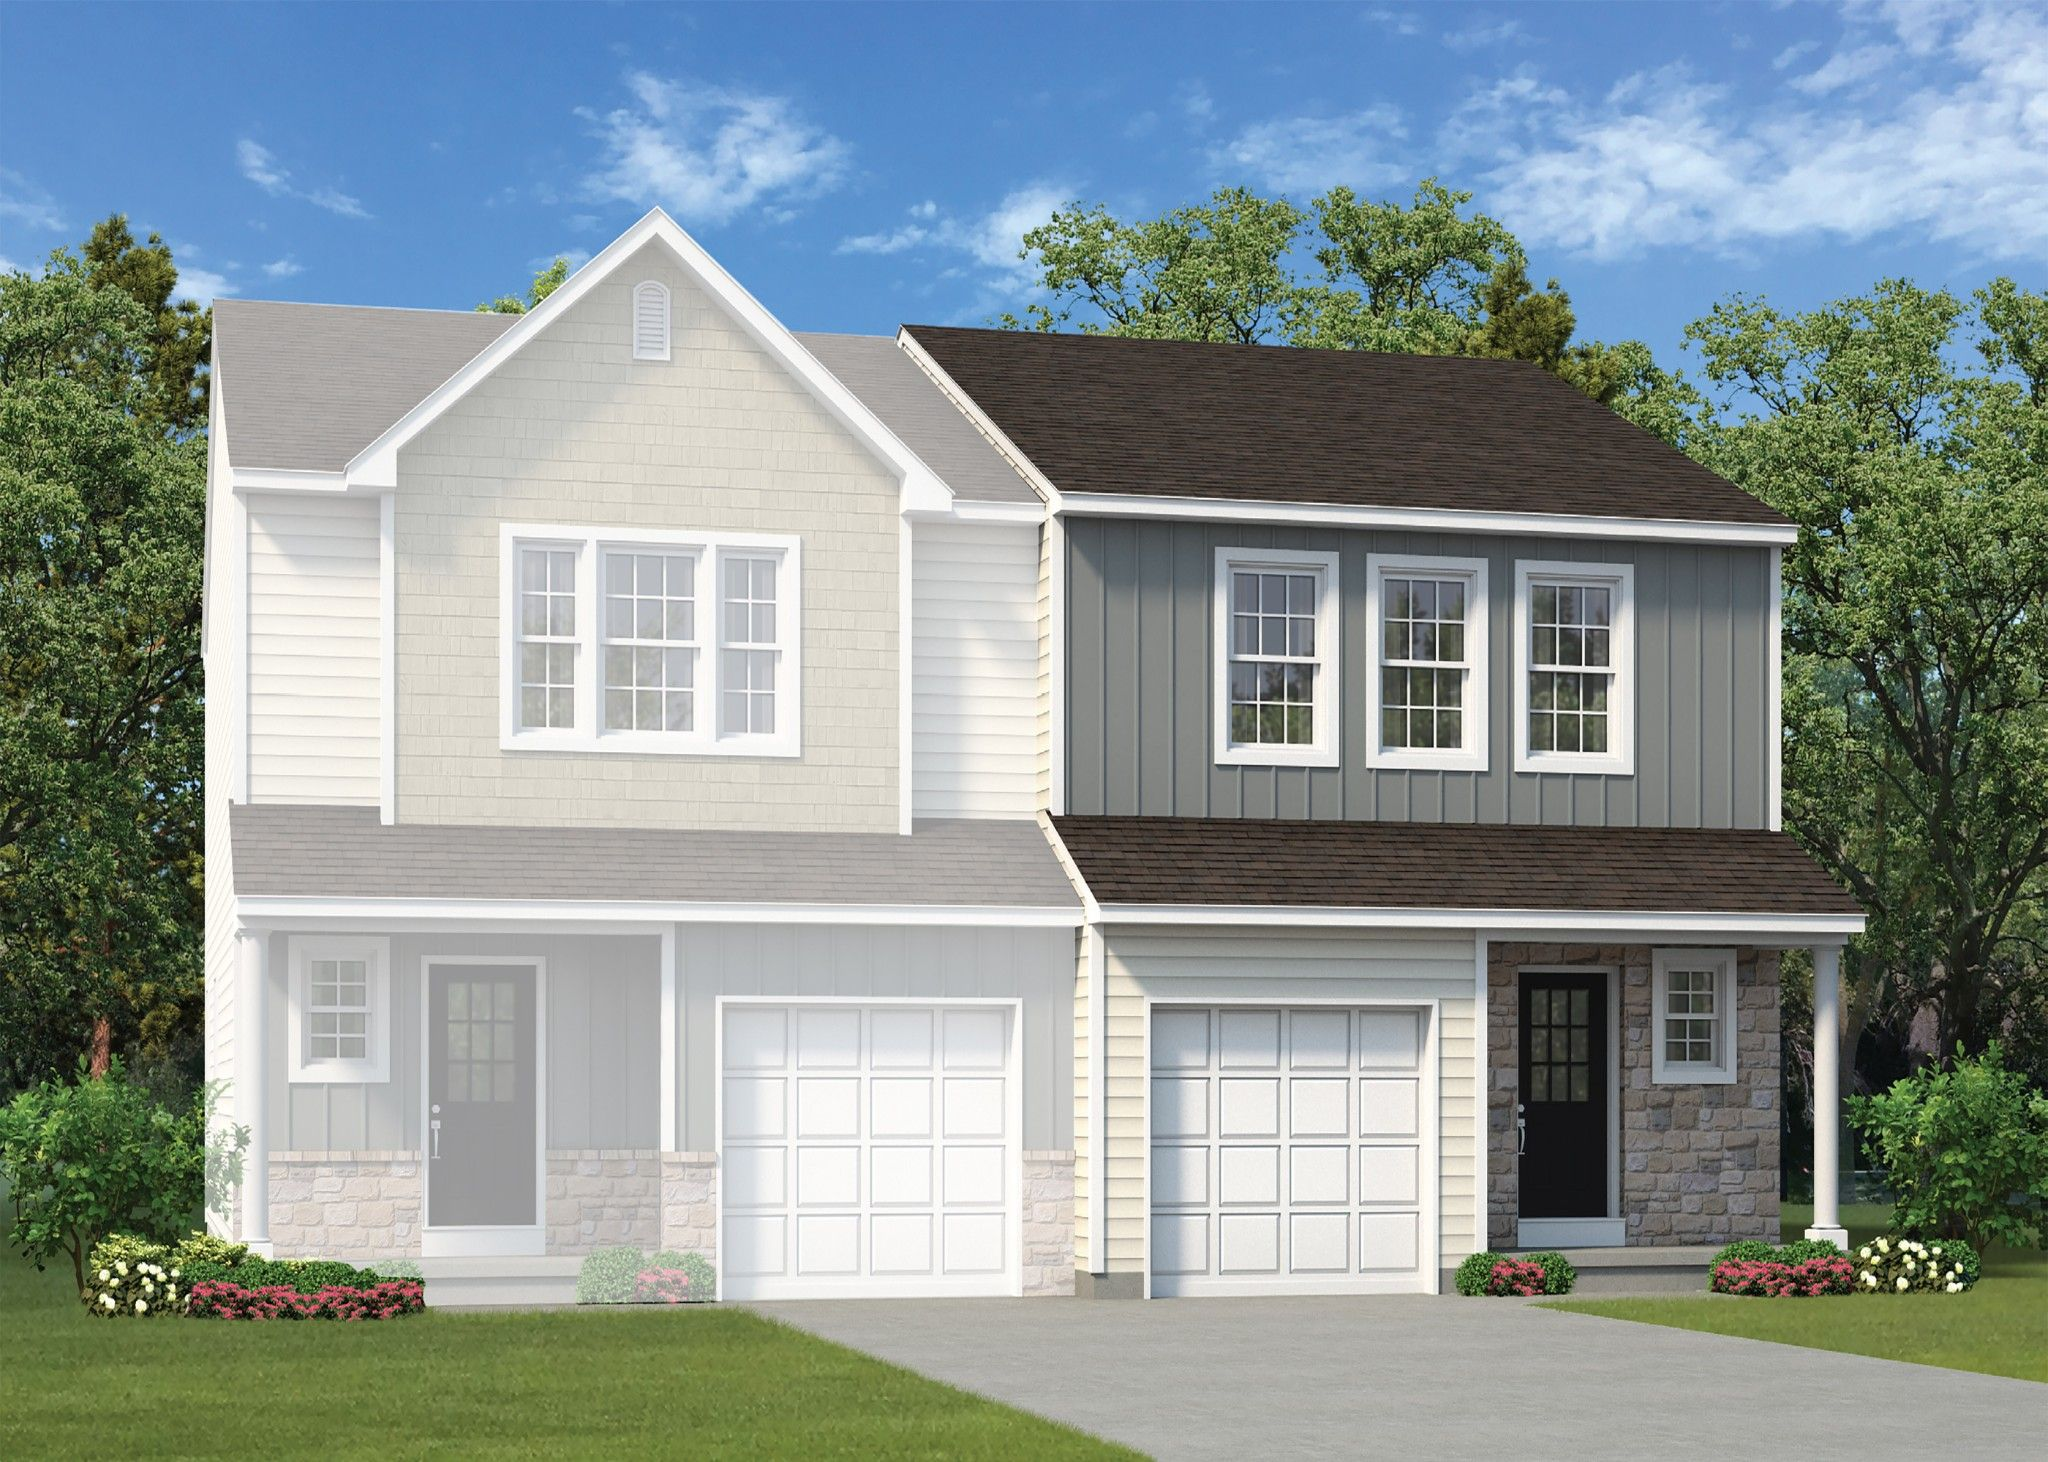 Exterior featured in the Towns at Woods Edge Craftsman By Tuskes Homes in Scranton-Wilkes-Barre, PA